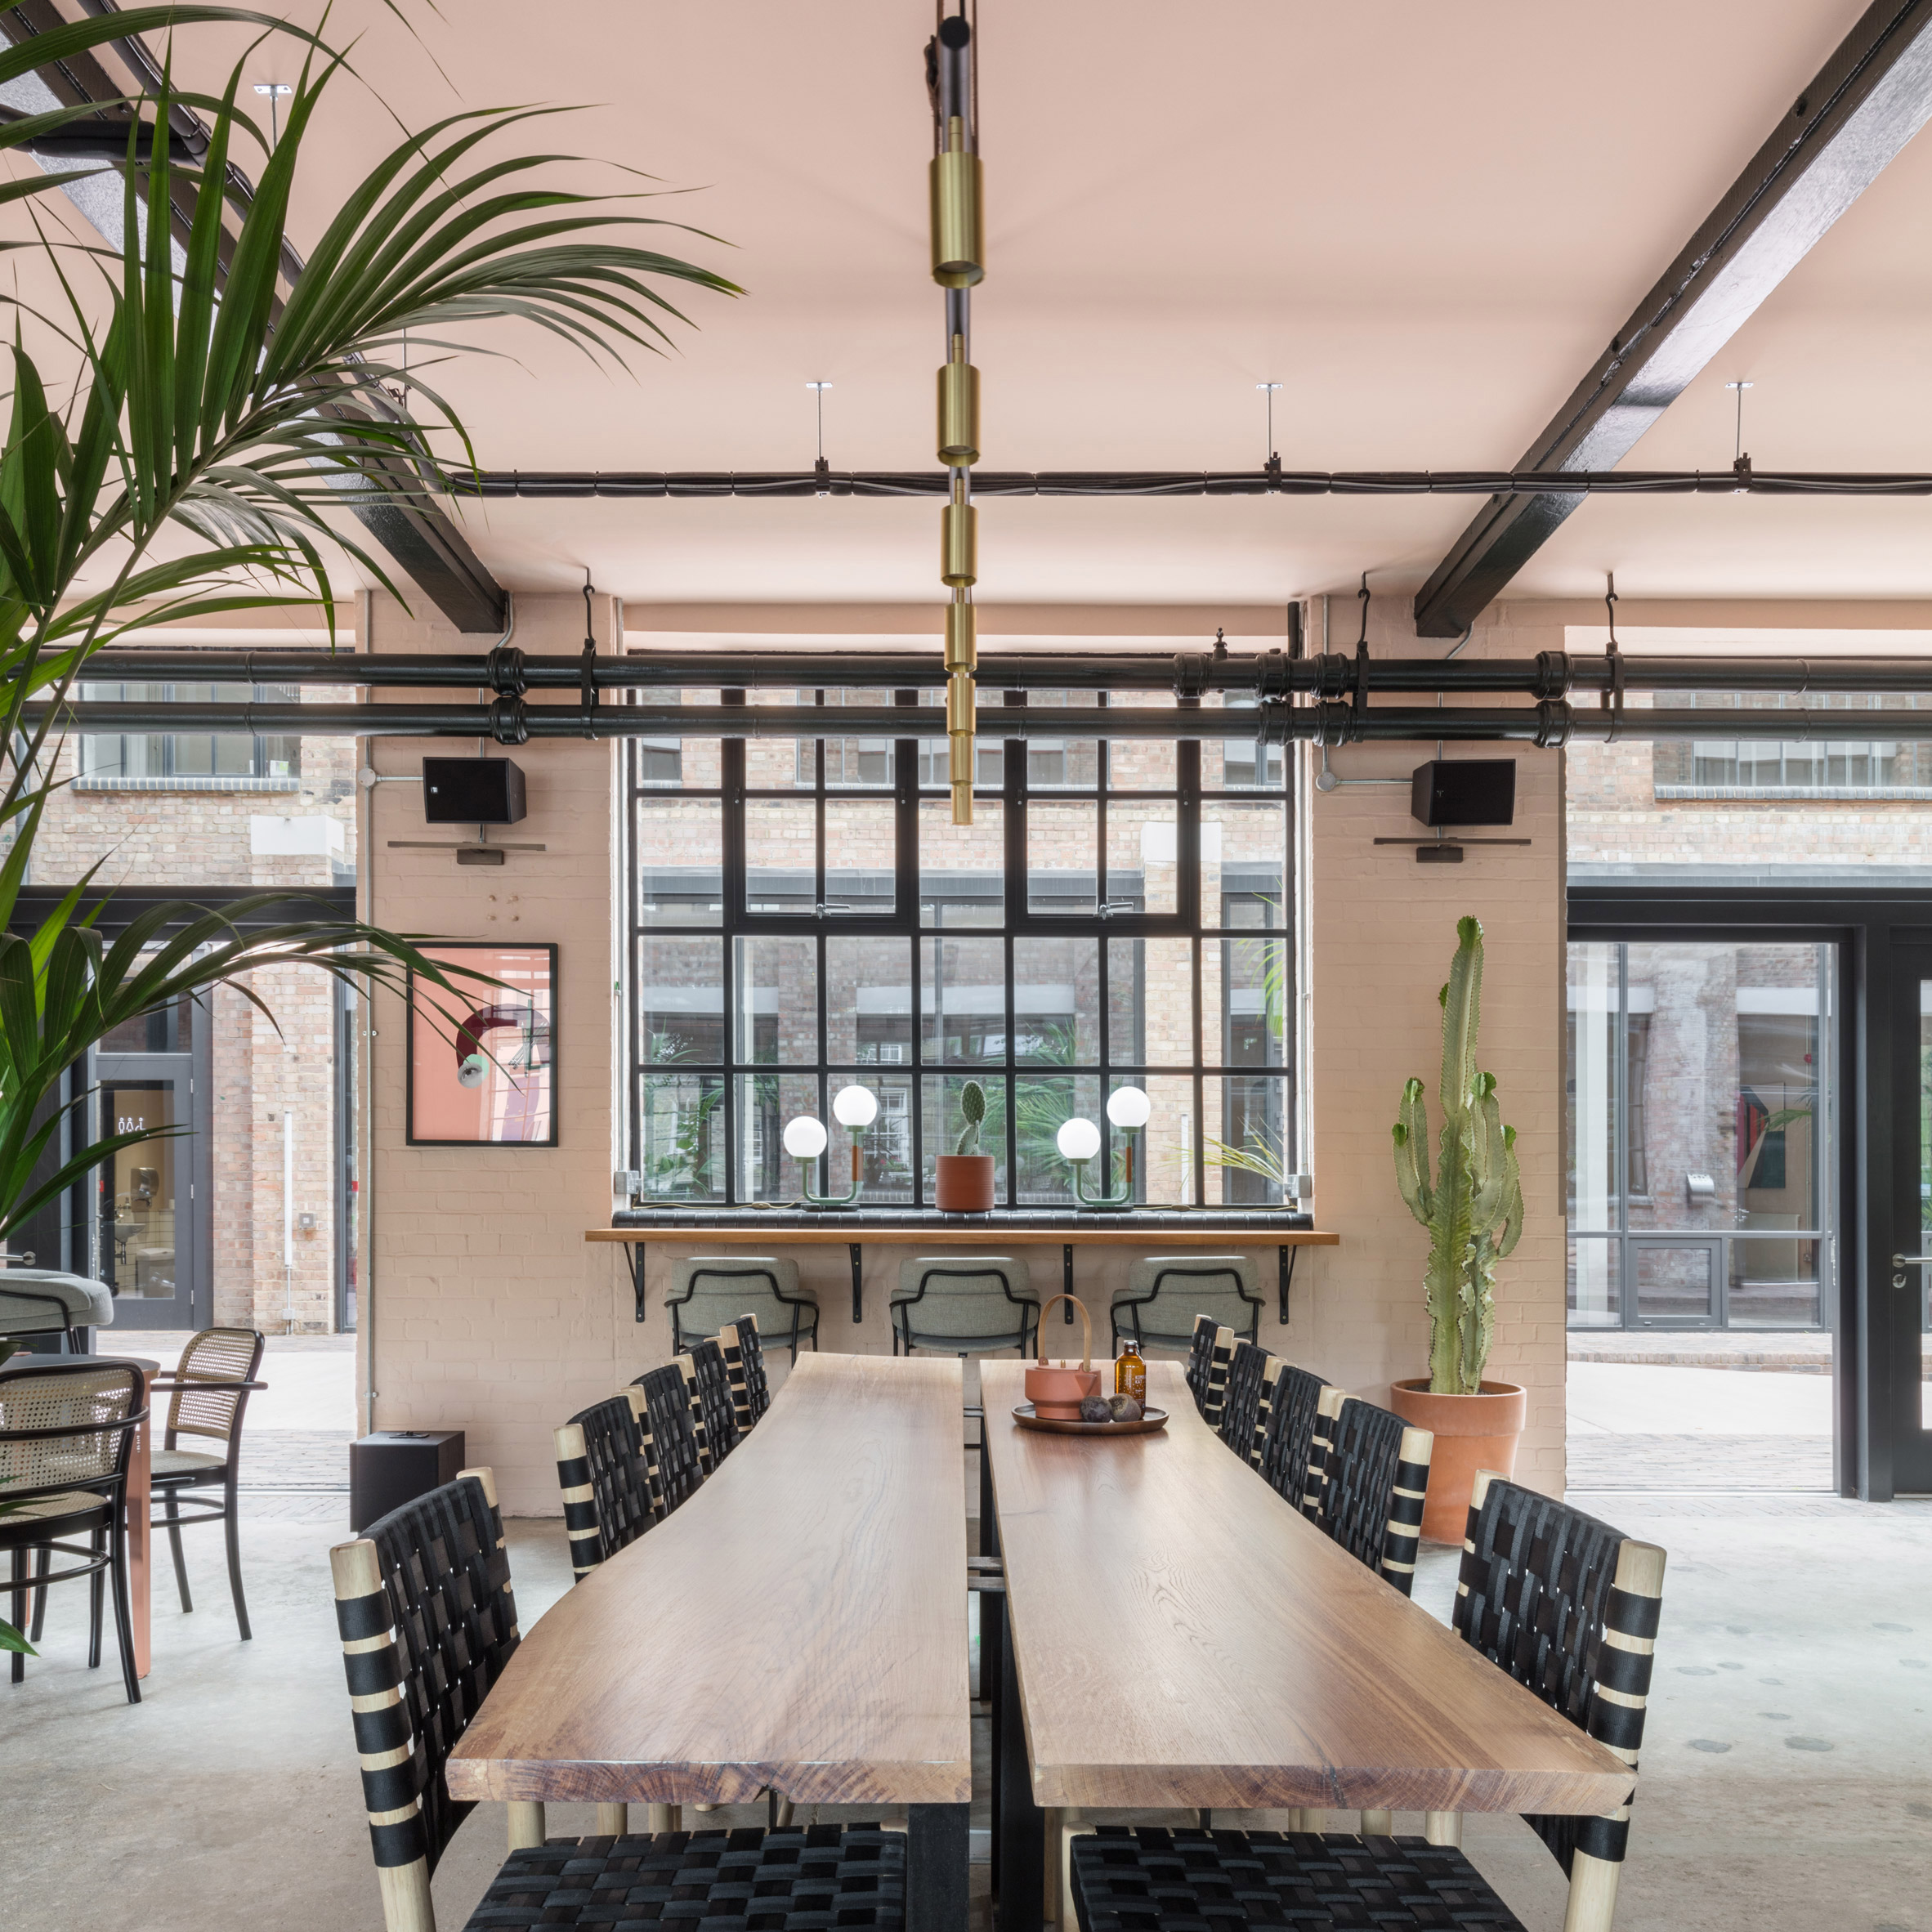 Sella Concept Applies Cocoon Of Rich Materials And Colour To Interiors East London Office